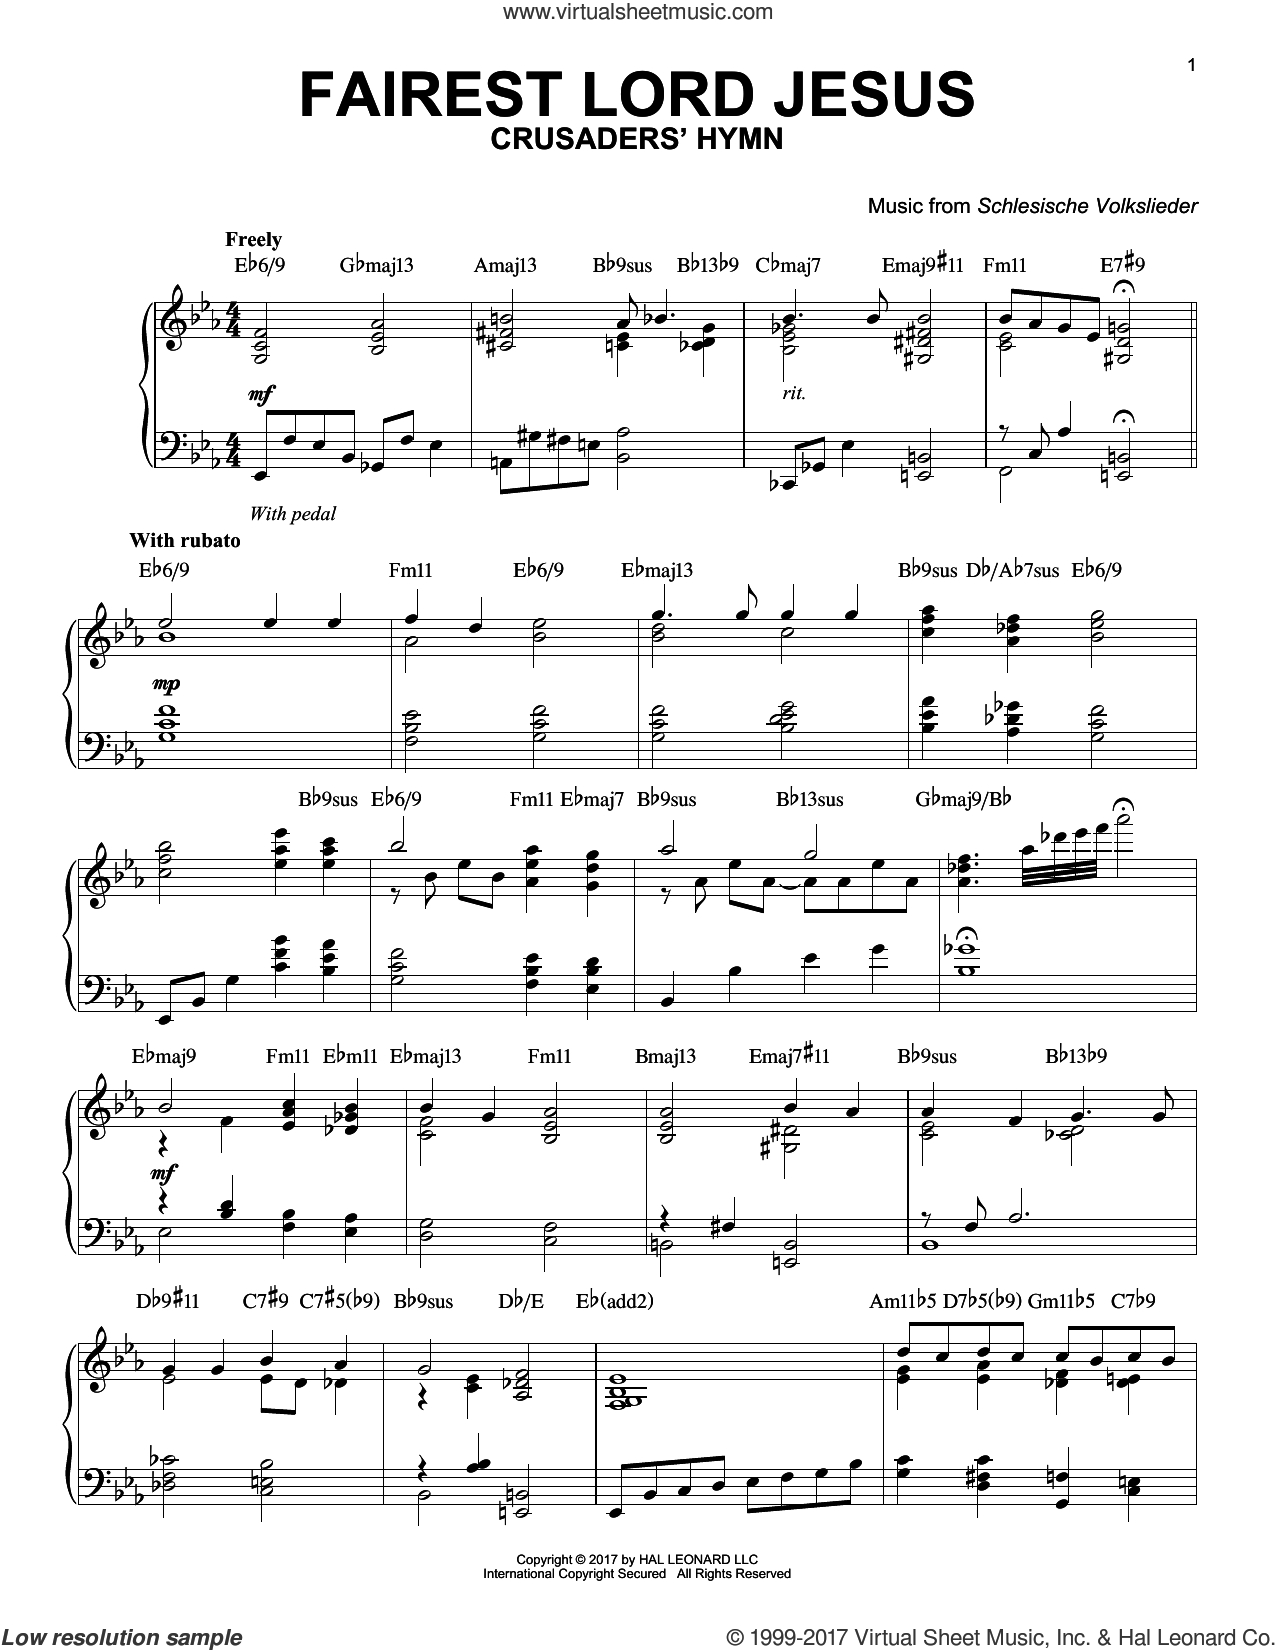 Fairest Lord Jesus sheet music for piano solo by Joseph August Seiss, Munster Gesangbuch and Schlesische Volkslieder, intermediate skill level